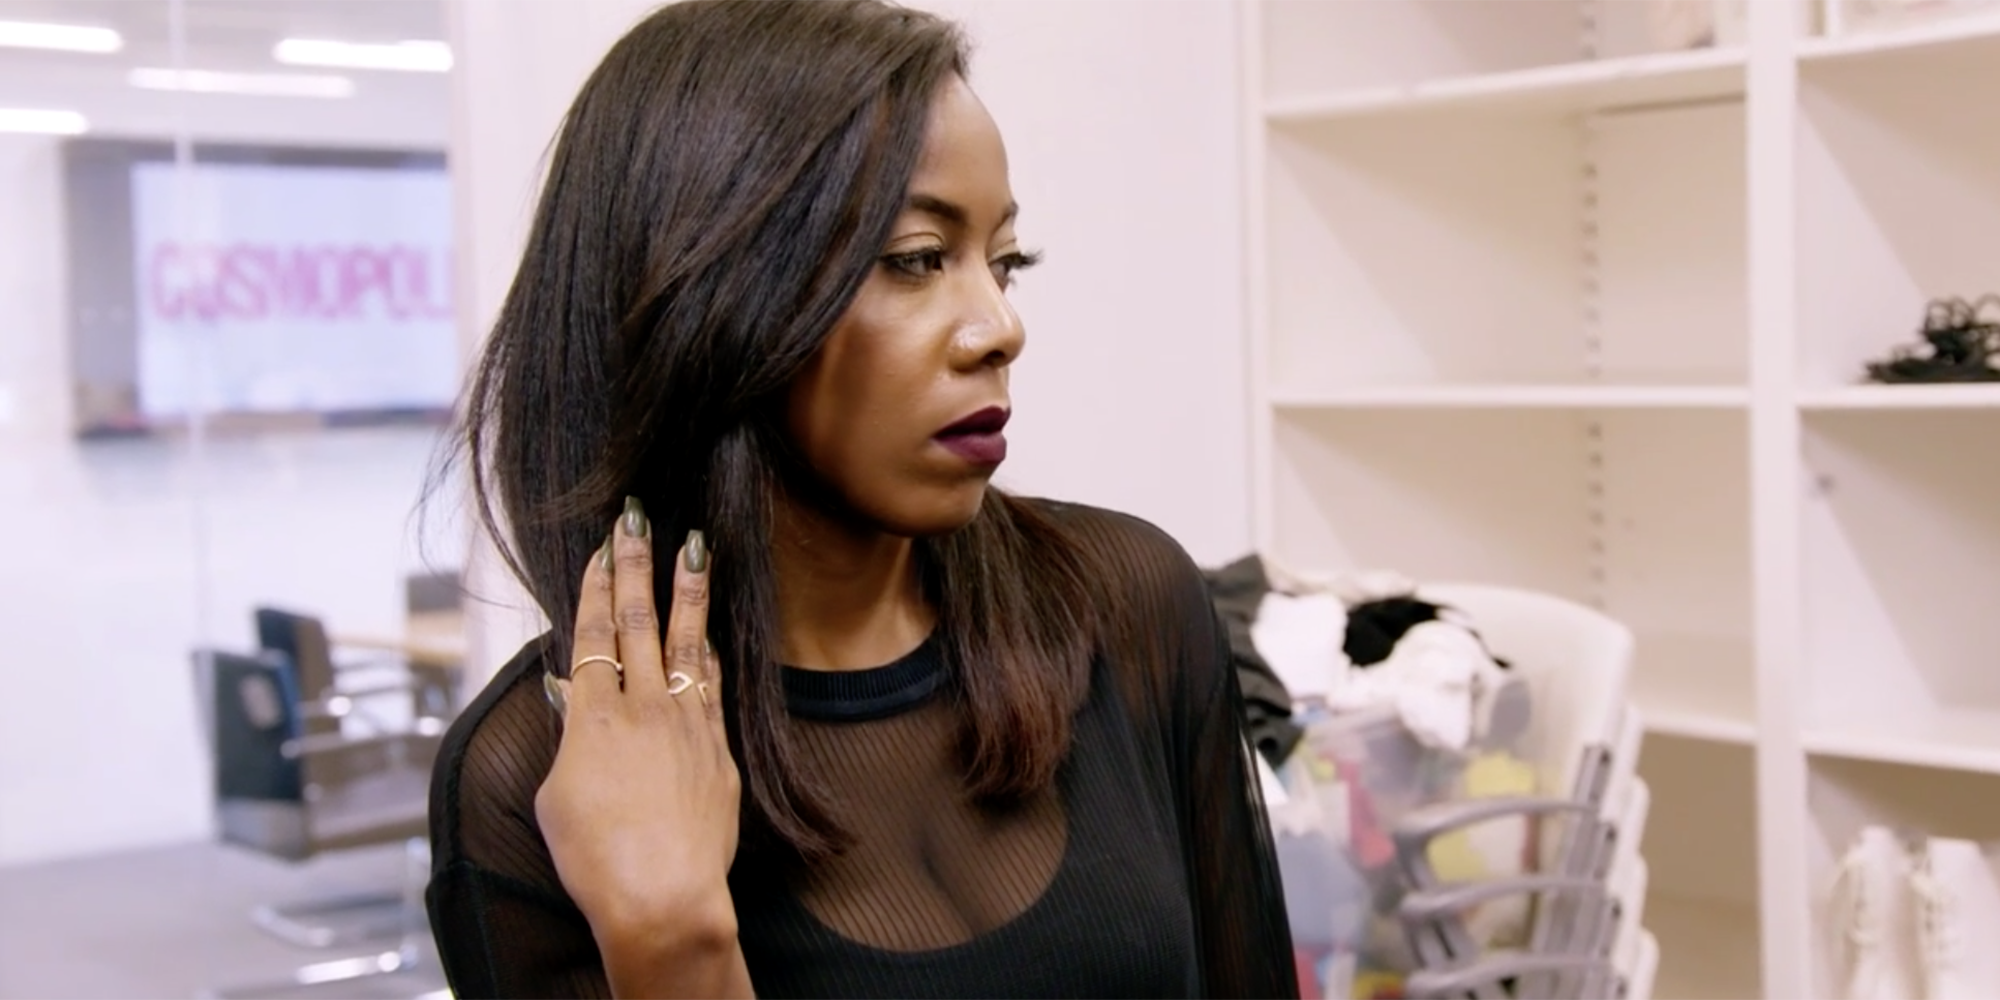 So Cosmo Welcomes Some Fashion Drama After Tiffany Damages a Couture Skirt